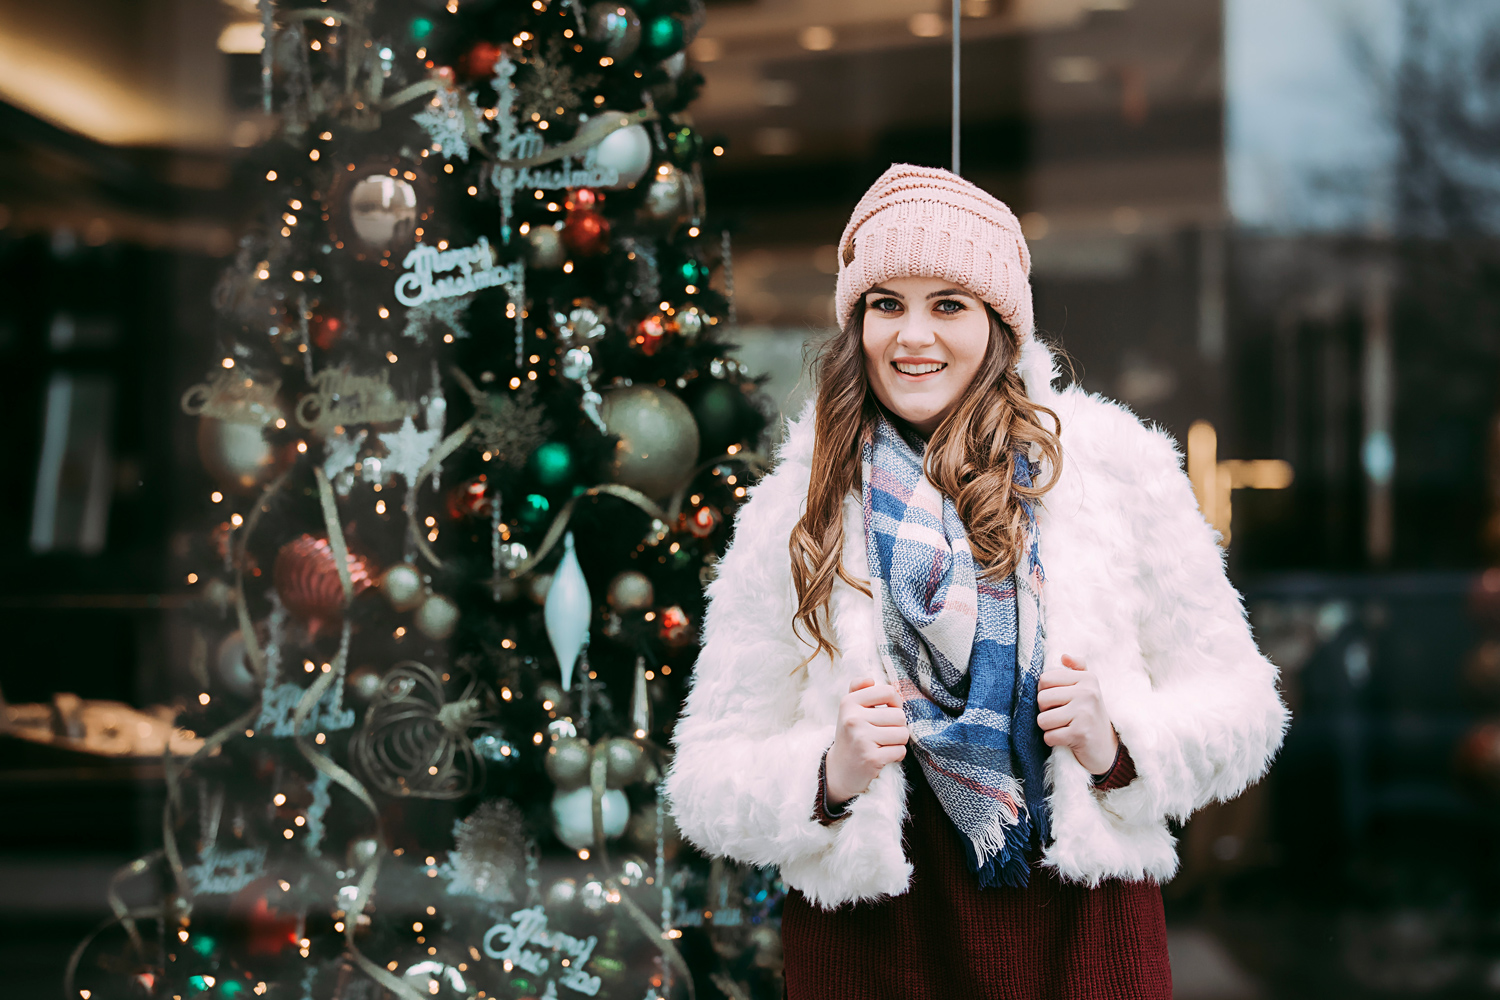 High school senior girl wearing white coat and pink hat standing in front of a christmas tree in downtown Oklahoma City by Amanda Lynn Photography.